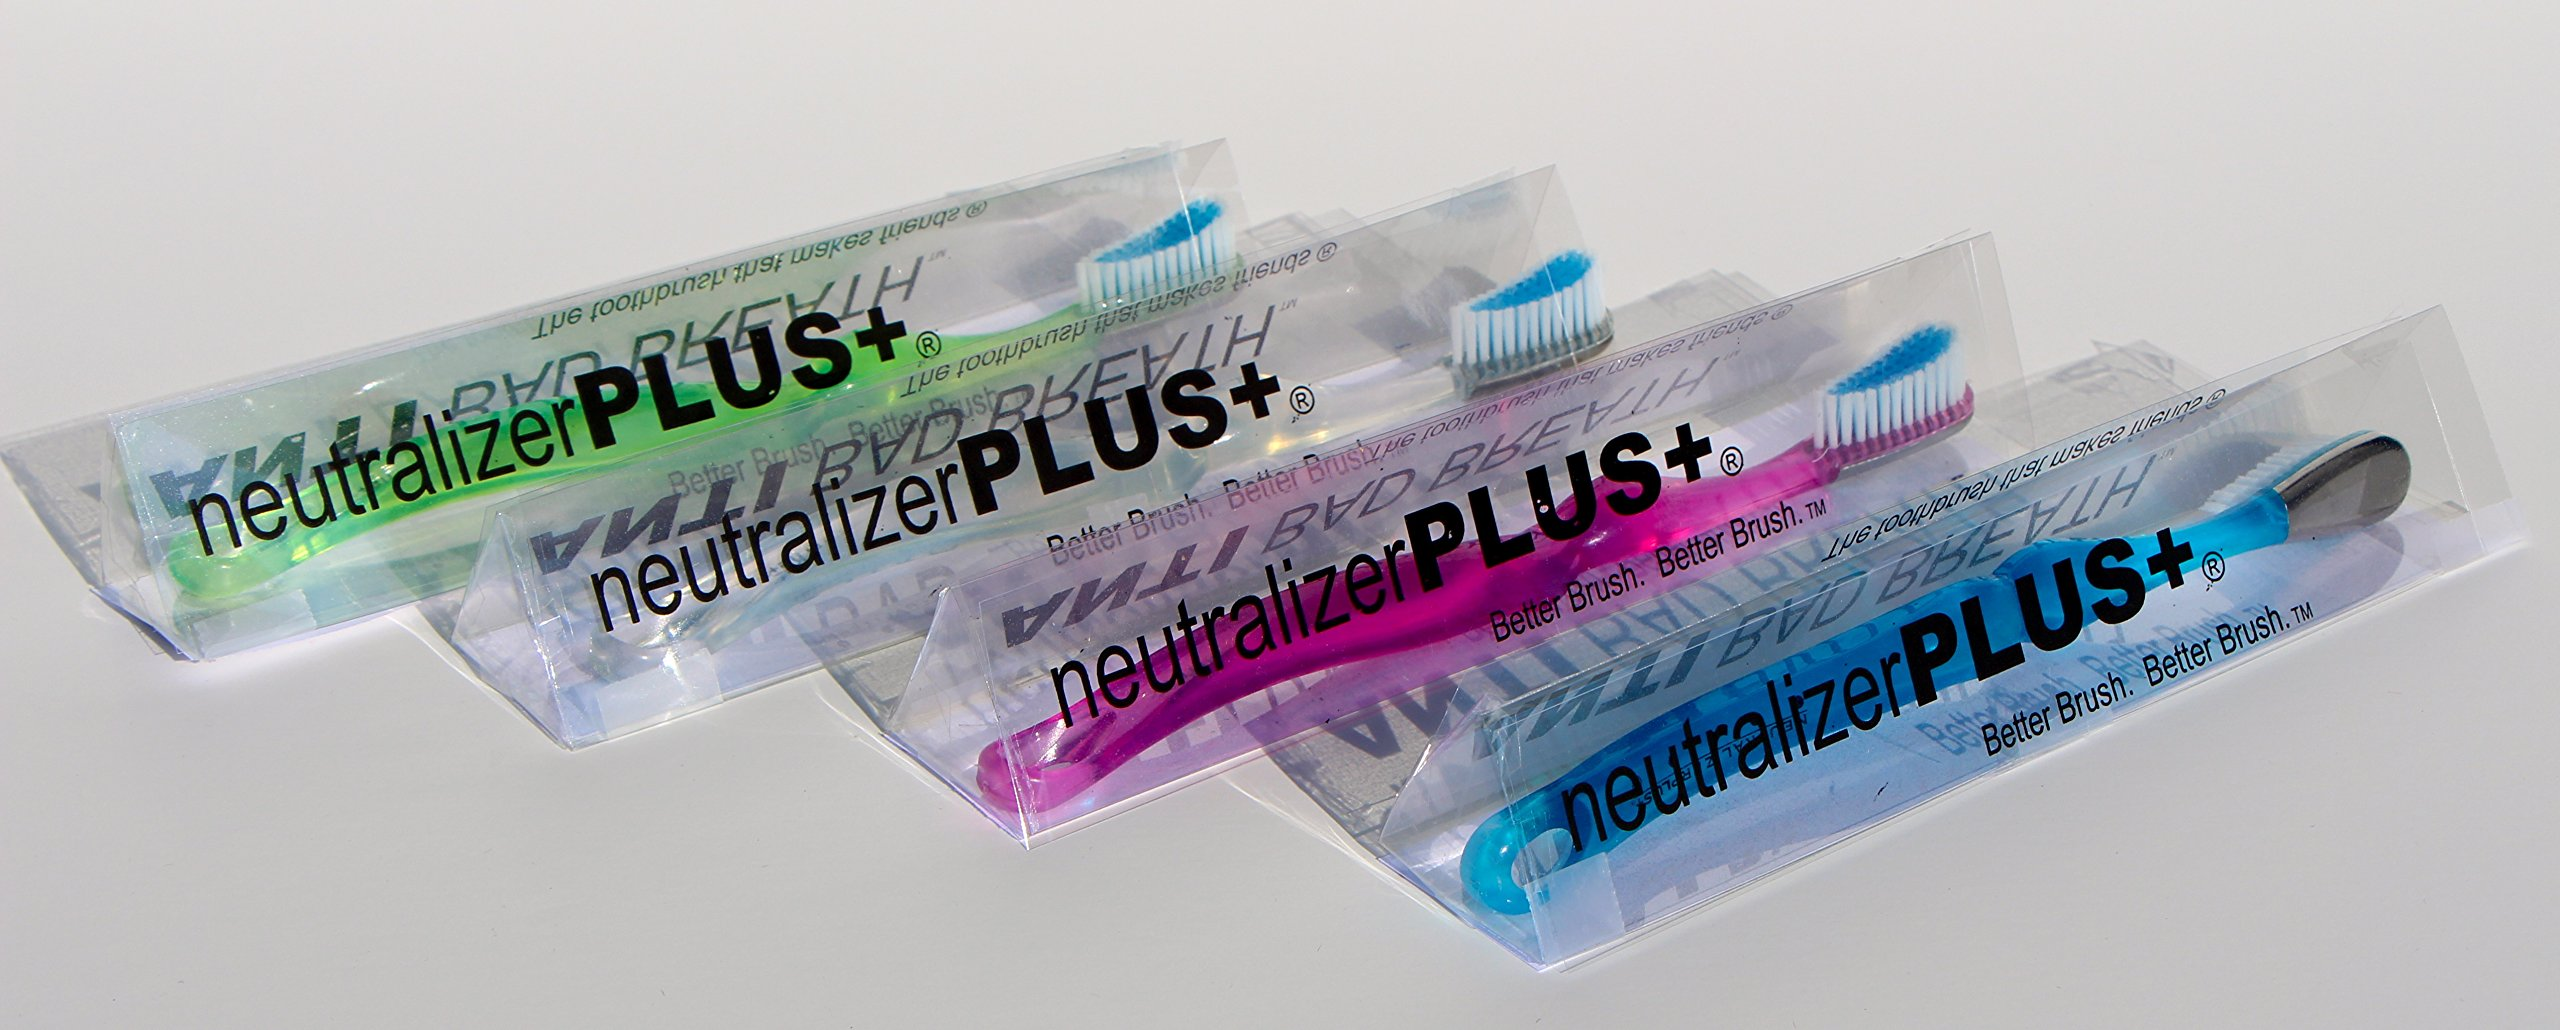 neutralizerPLUS+ Anti Bad Breath Toothbrush Patented by a Dentist - The ONLY Toothbrush to use Natural Chemistry and a Scientific Alloy every time you brush to neutralize bad breath odors - design includes tongue scraper - daily use reduces bad breath odo